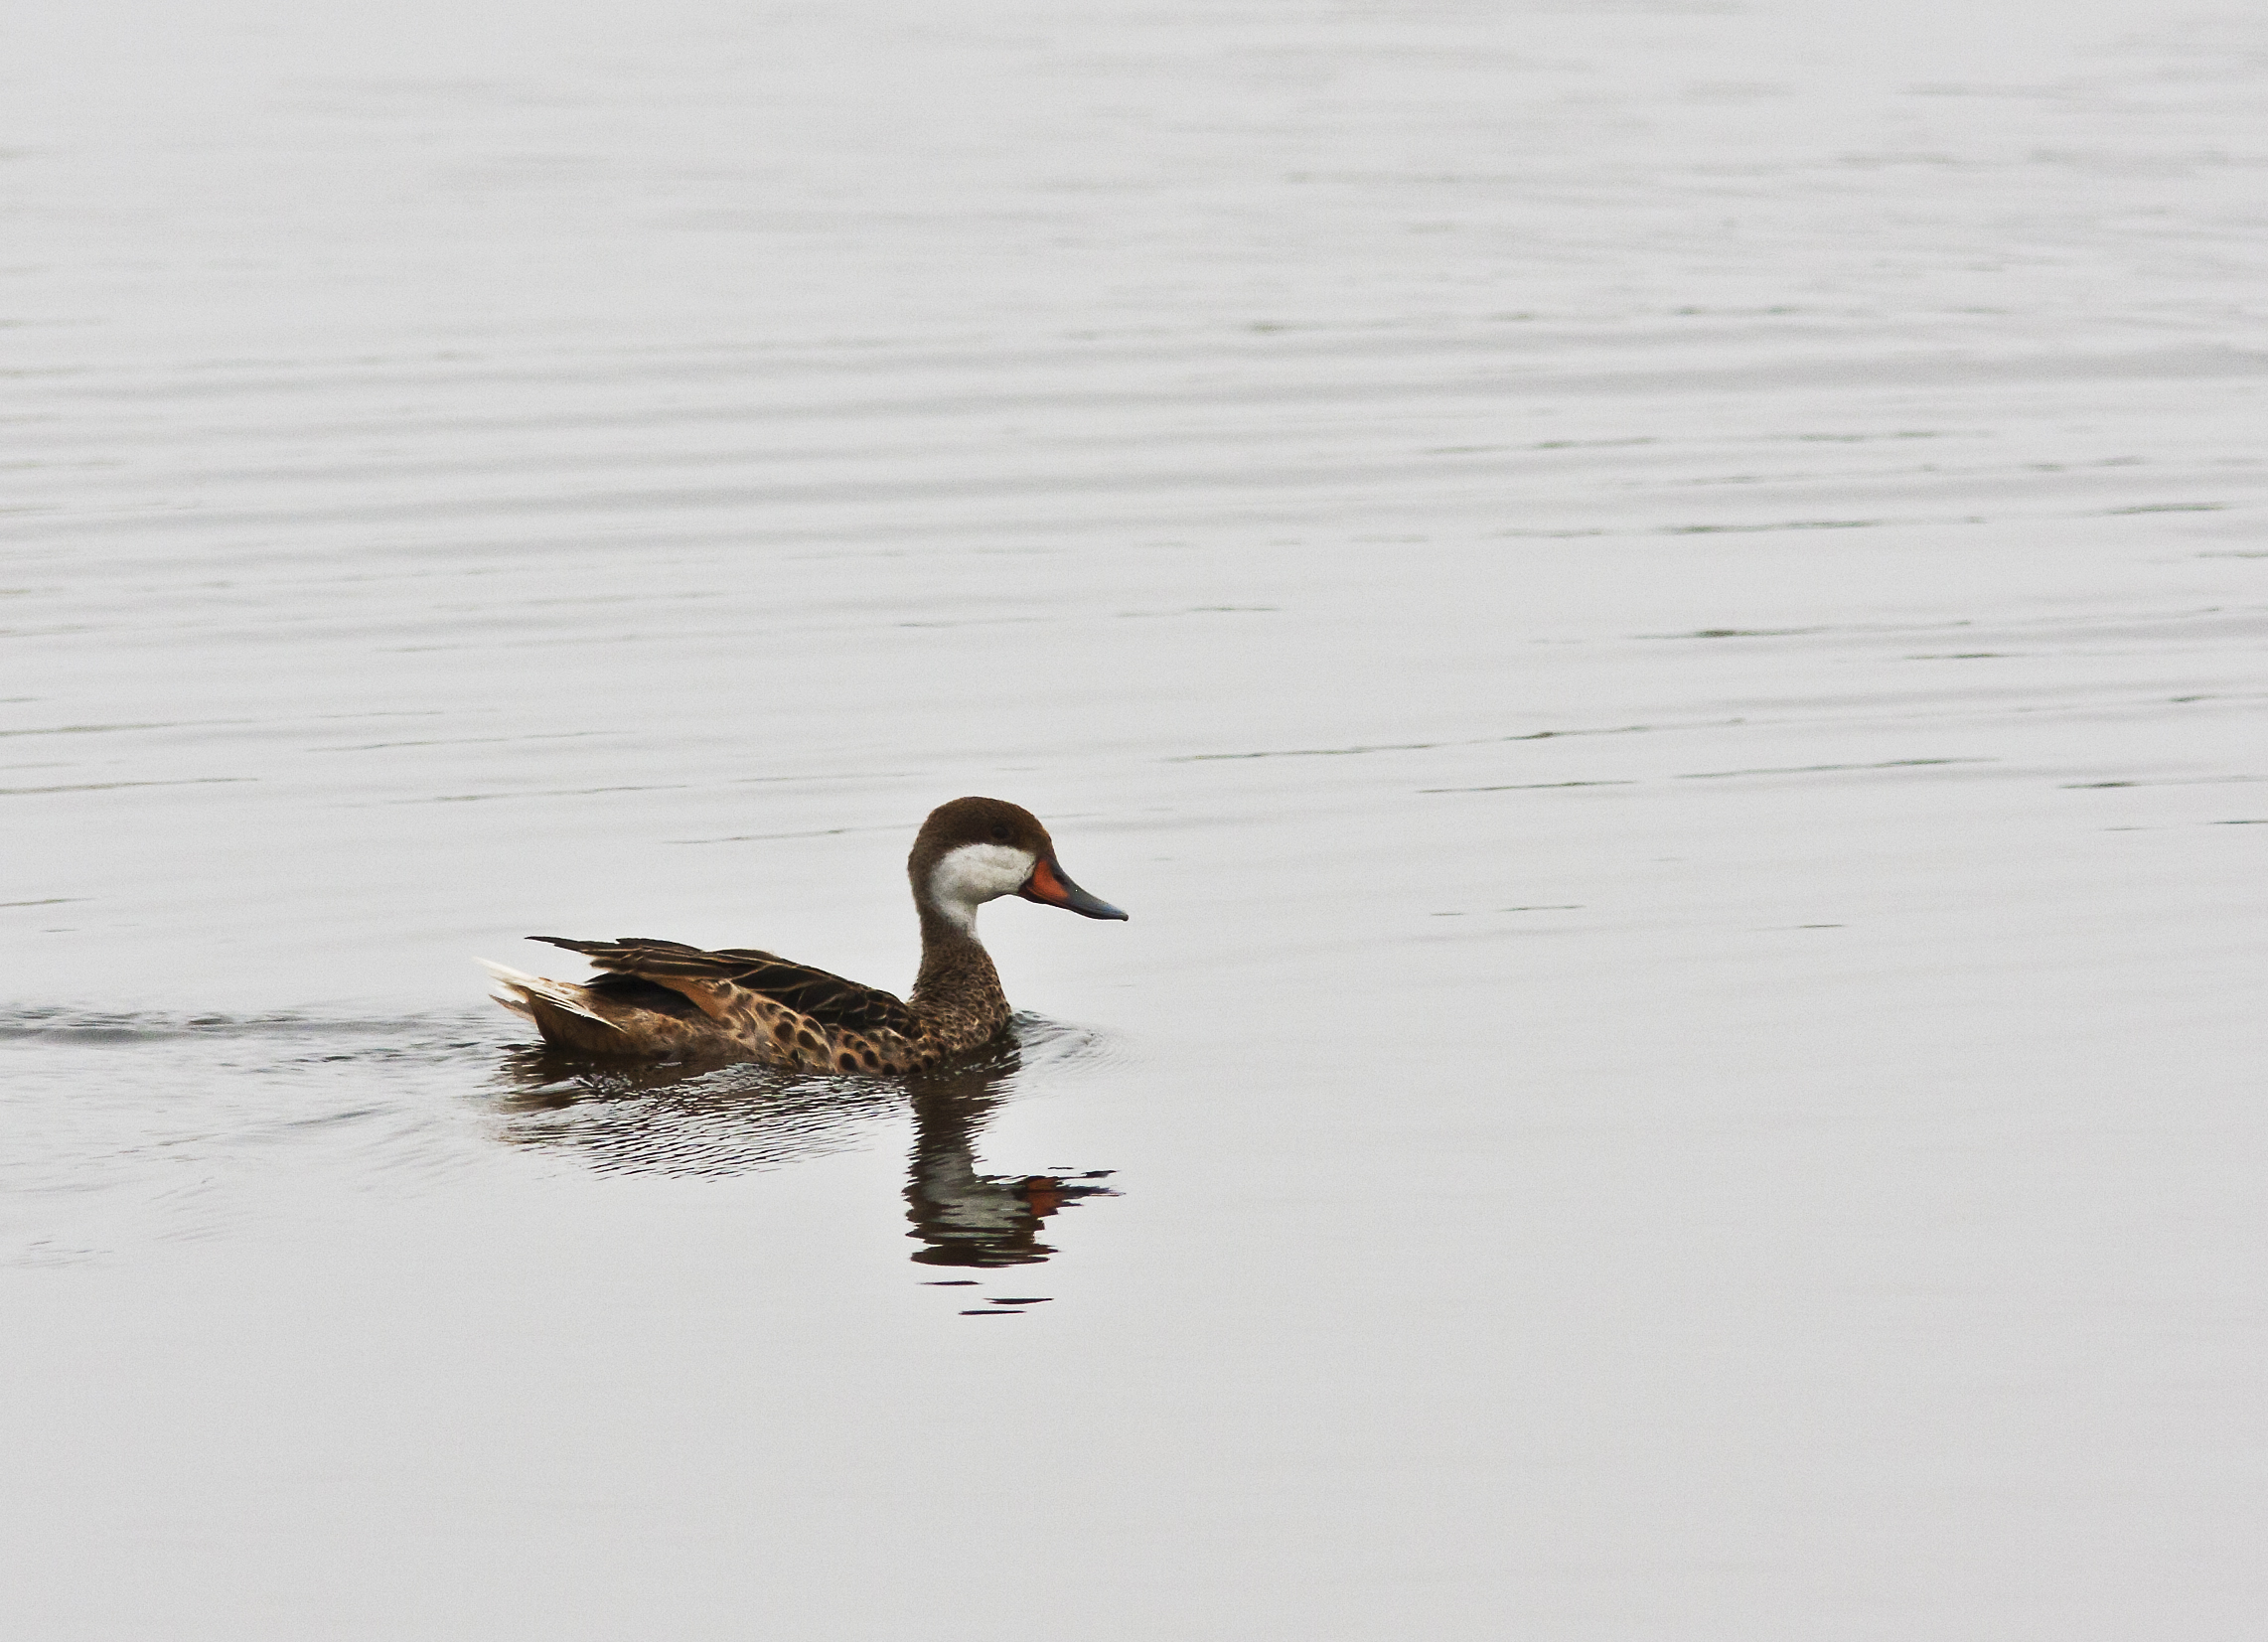 Scientific Name: White-cheeked Pintail - Photo: Melissa Paredes Berrocal